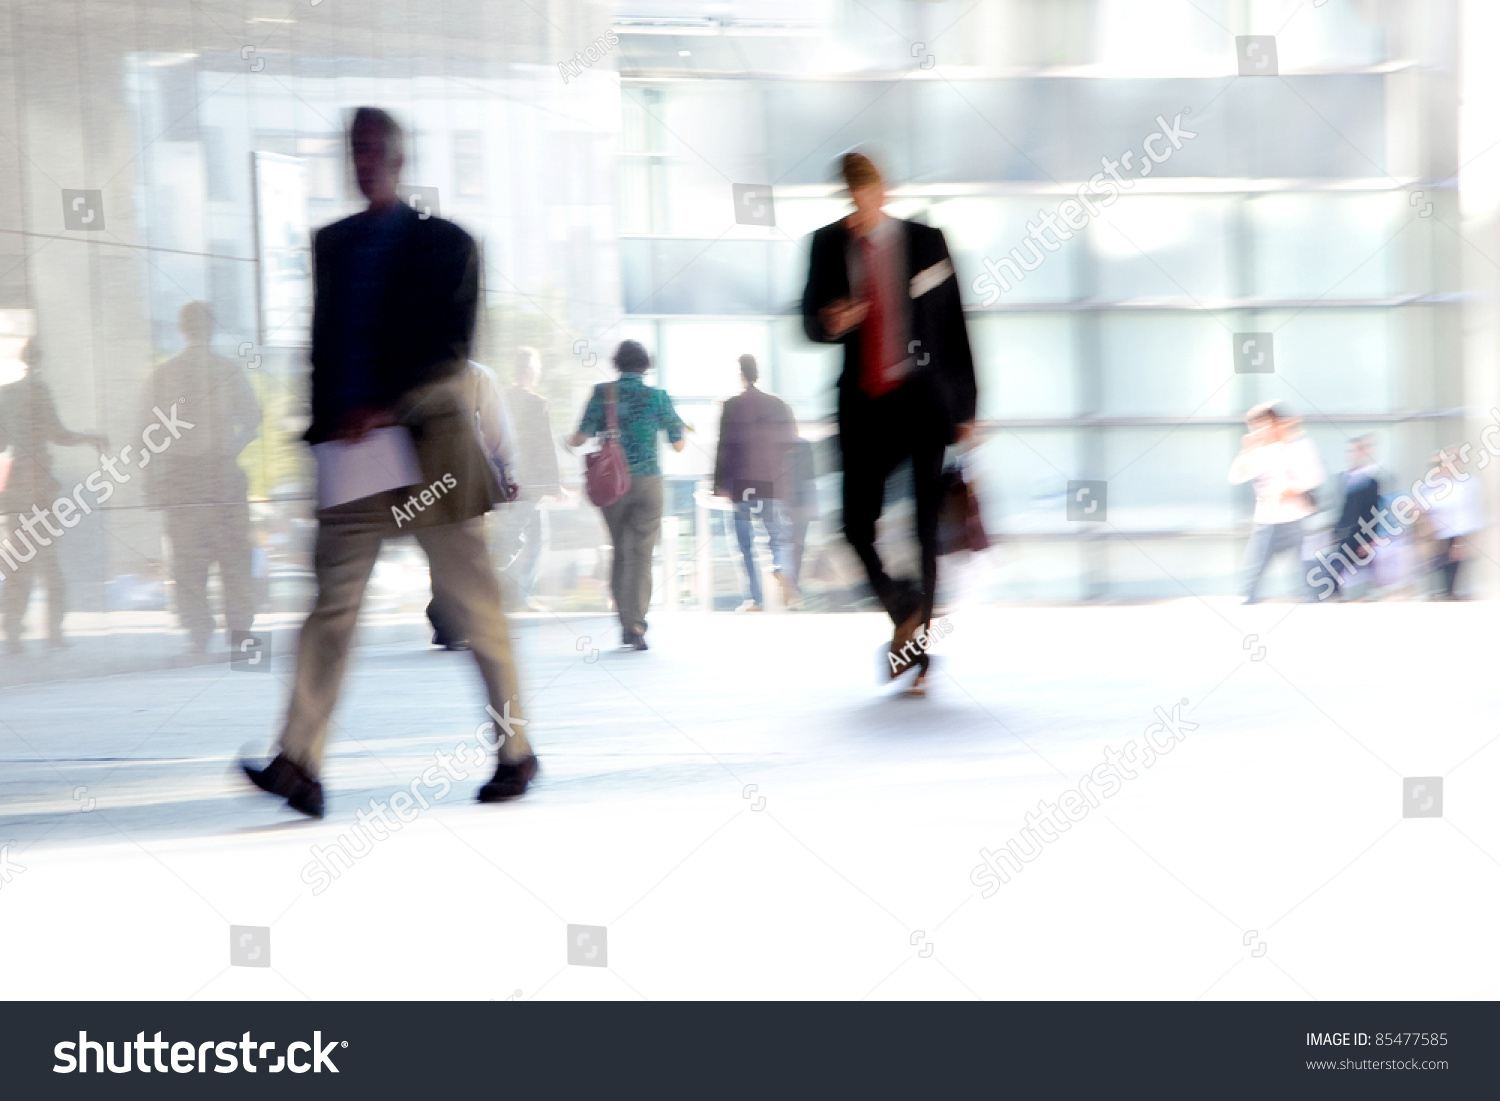 Fast Paced Business World Blurred Motion Stock Photo ...